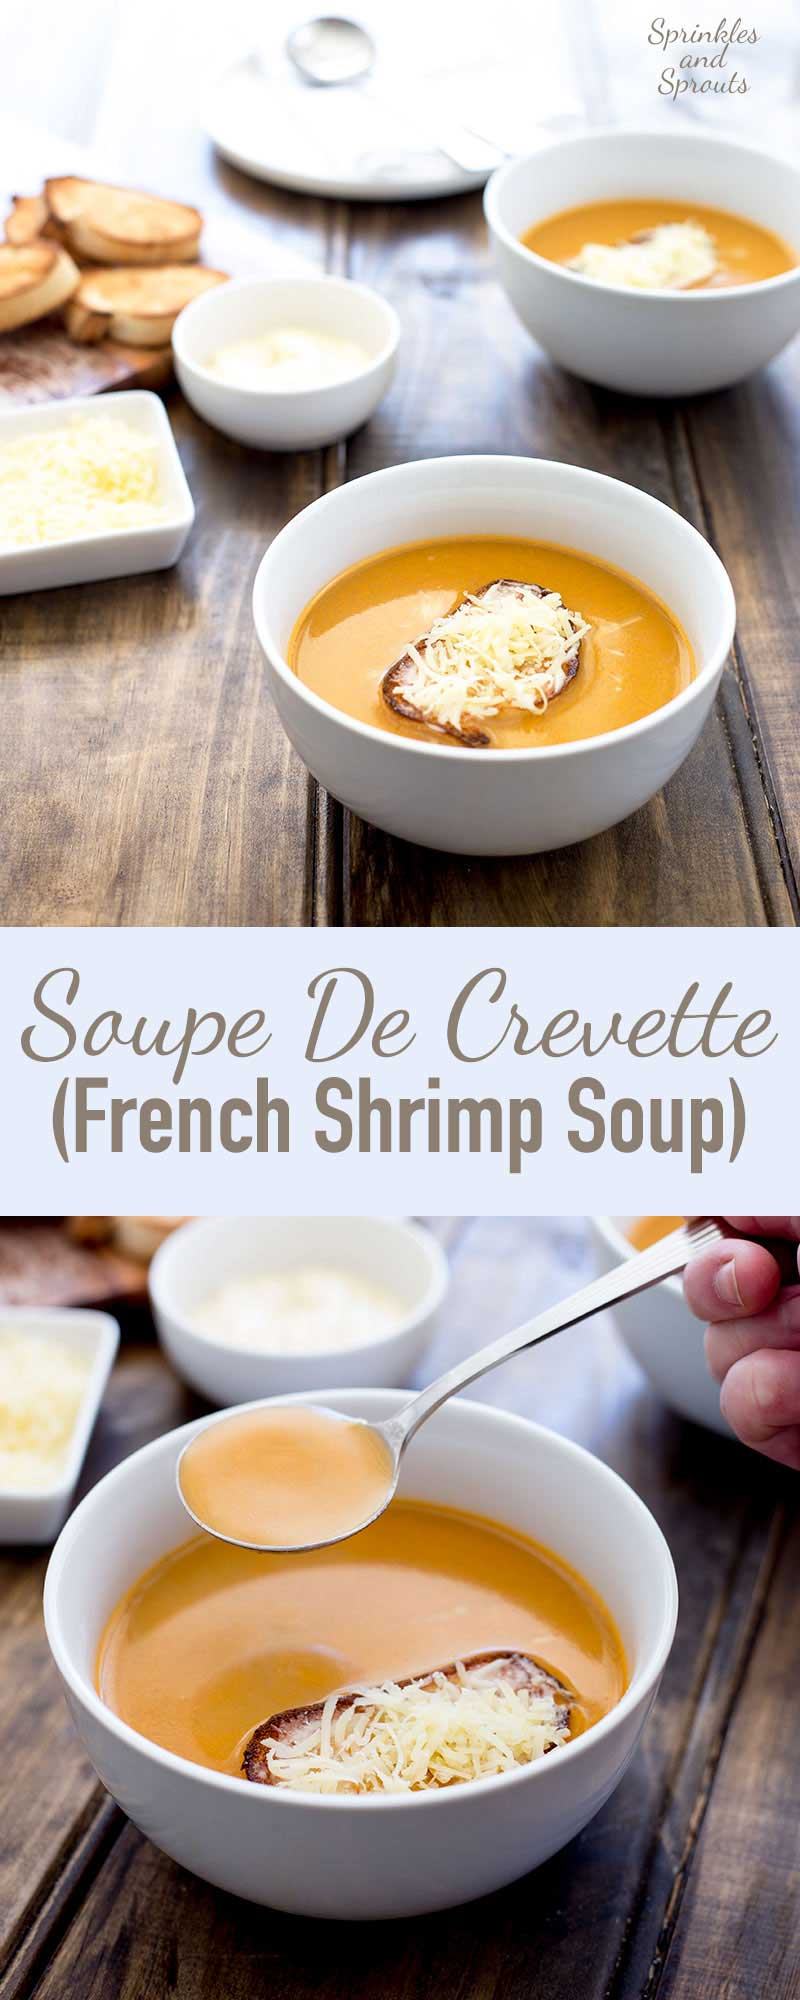 This Soupe De Crevette (French Shrimp Soup) is a rich and creamy soup that is perfect for entertaining. It is simple to make and tastes like it is packed full of cream and butter, but it is actually remarkably low is calories!